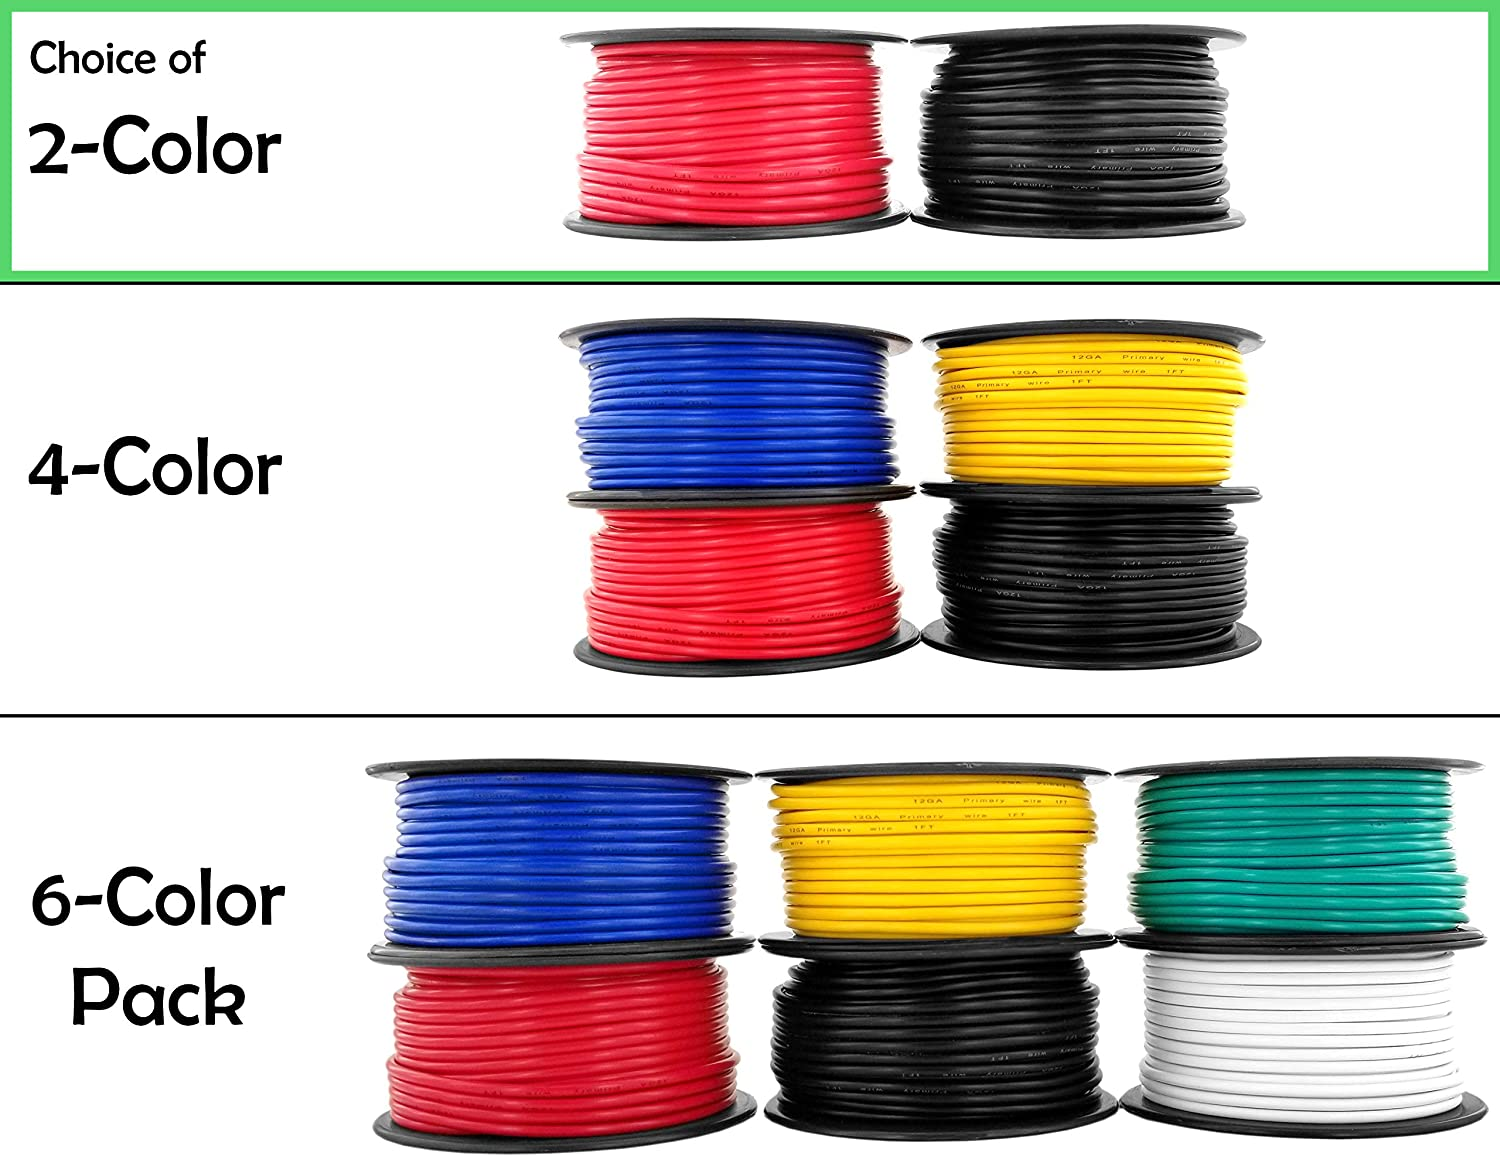 12 Gauge Copper Clad Aluminum Low Voltage Primary Wire 100 ft Red & Black (200 feet Total) for 12V Automotive Trailer Light Car Audio Stereo Harness Wiring (Also in 4 or 6 Color Combo)